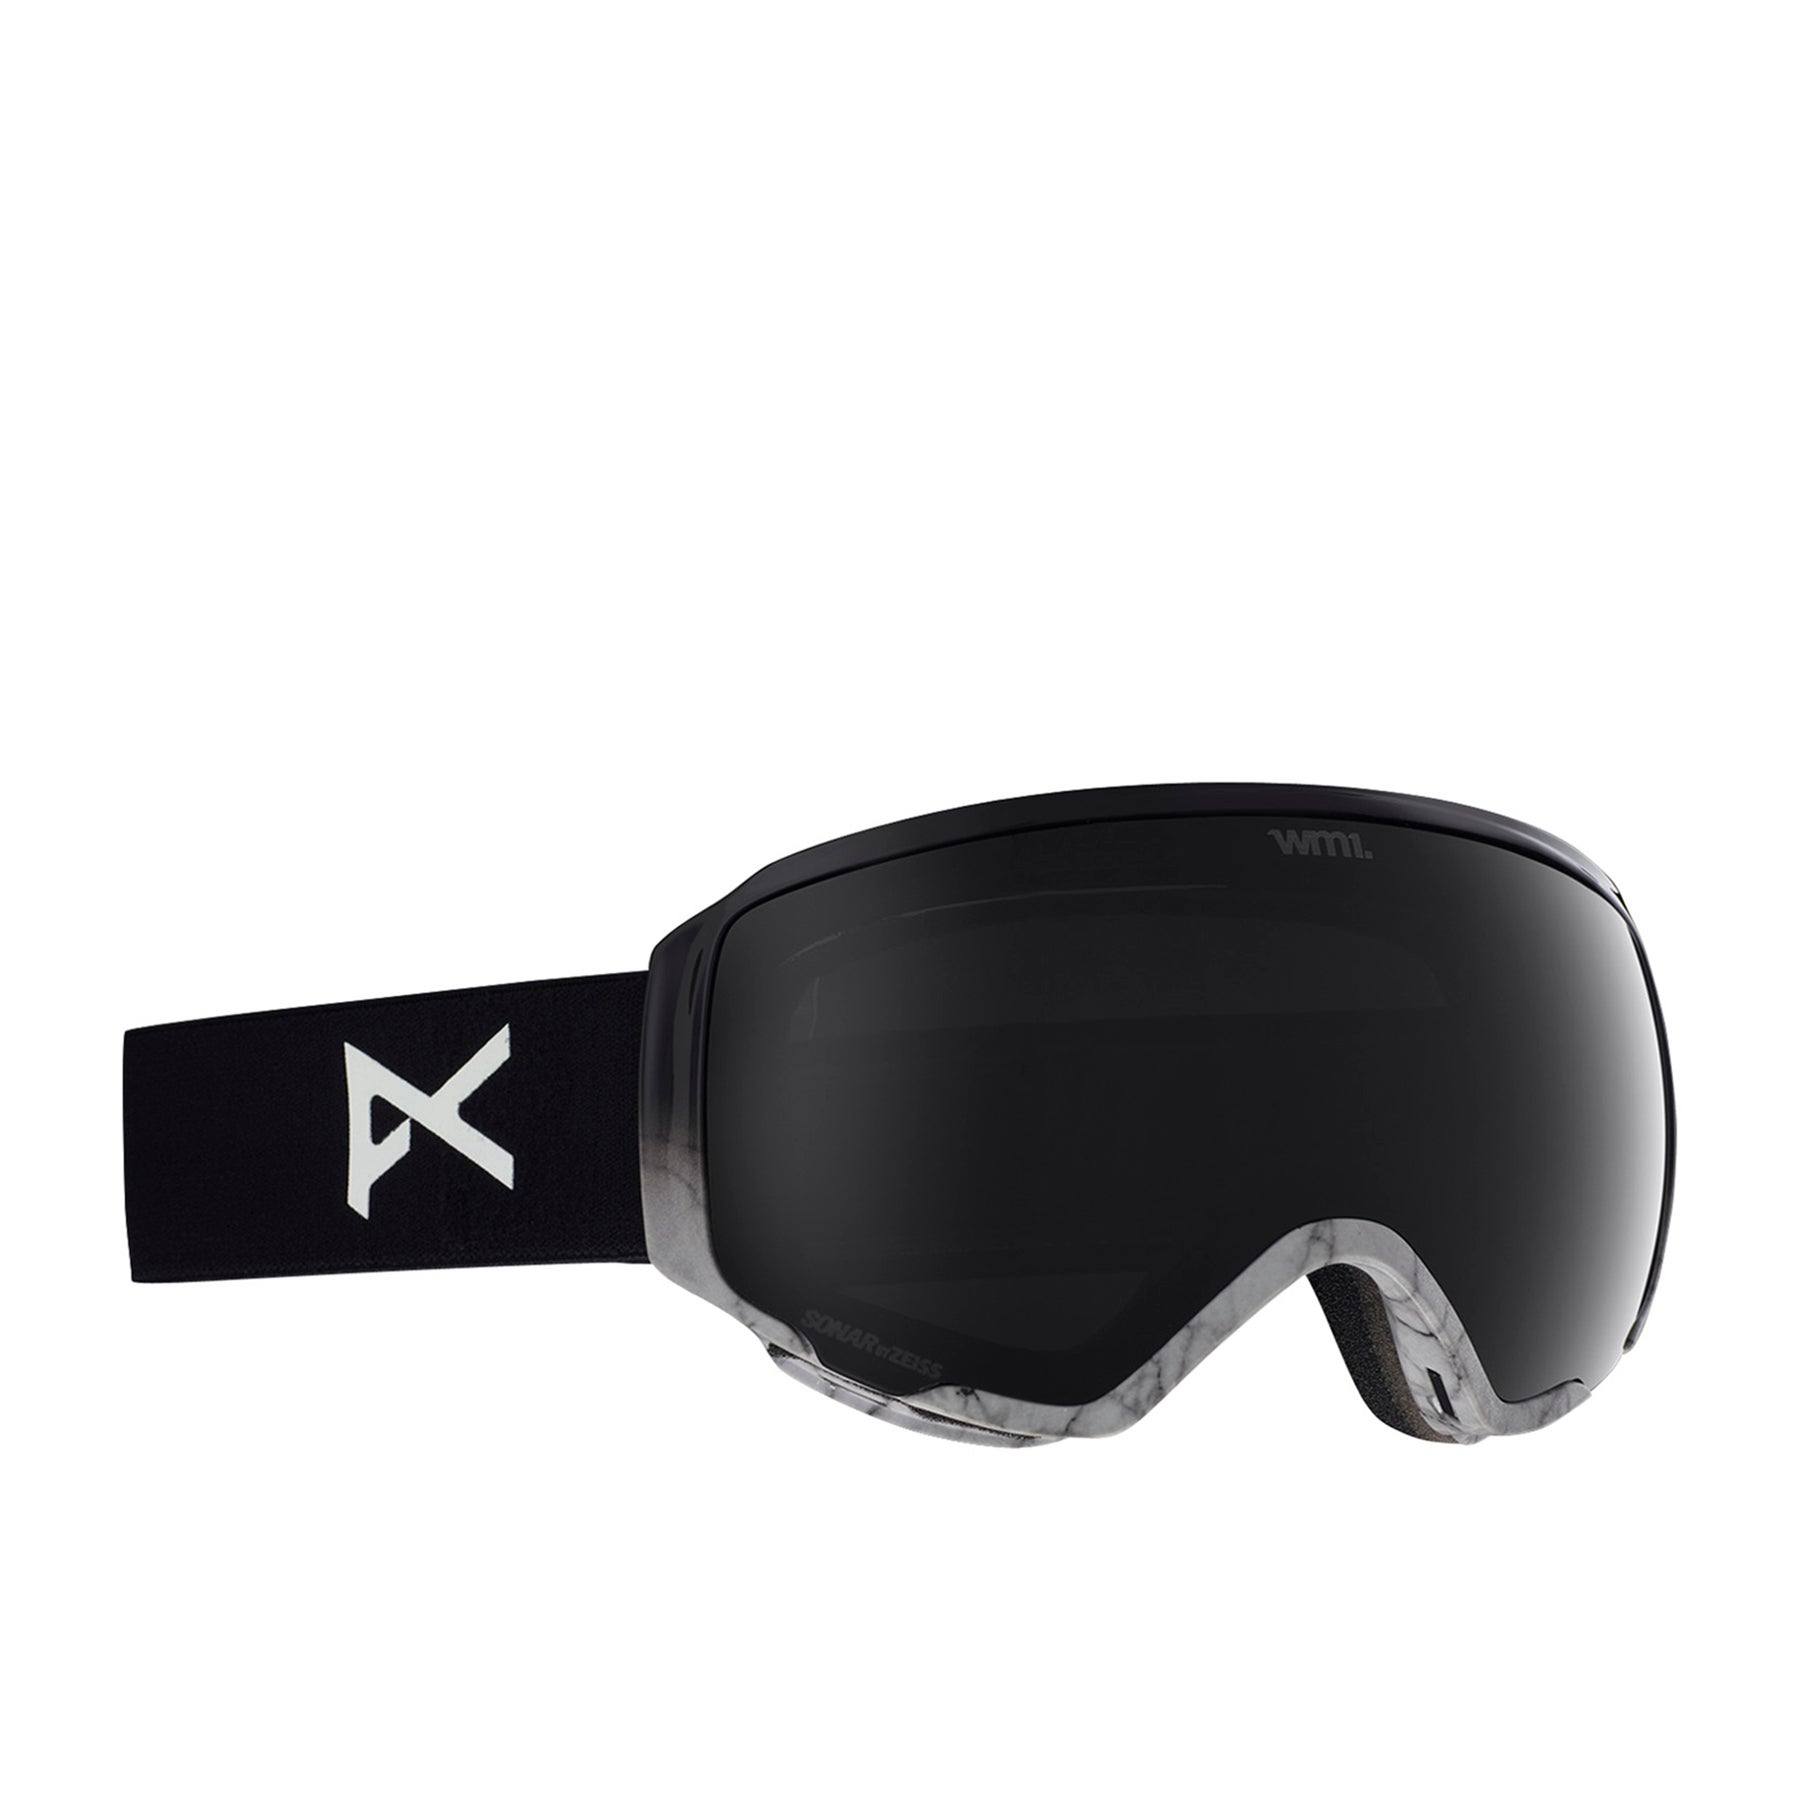 1246e9ed0b Goggles - Free Delivery options on All Orders from Surfdome